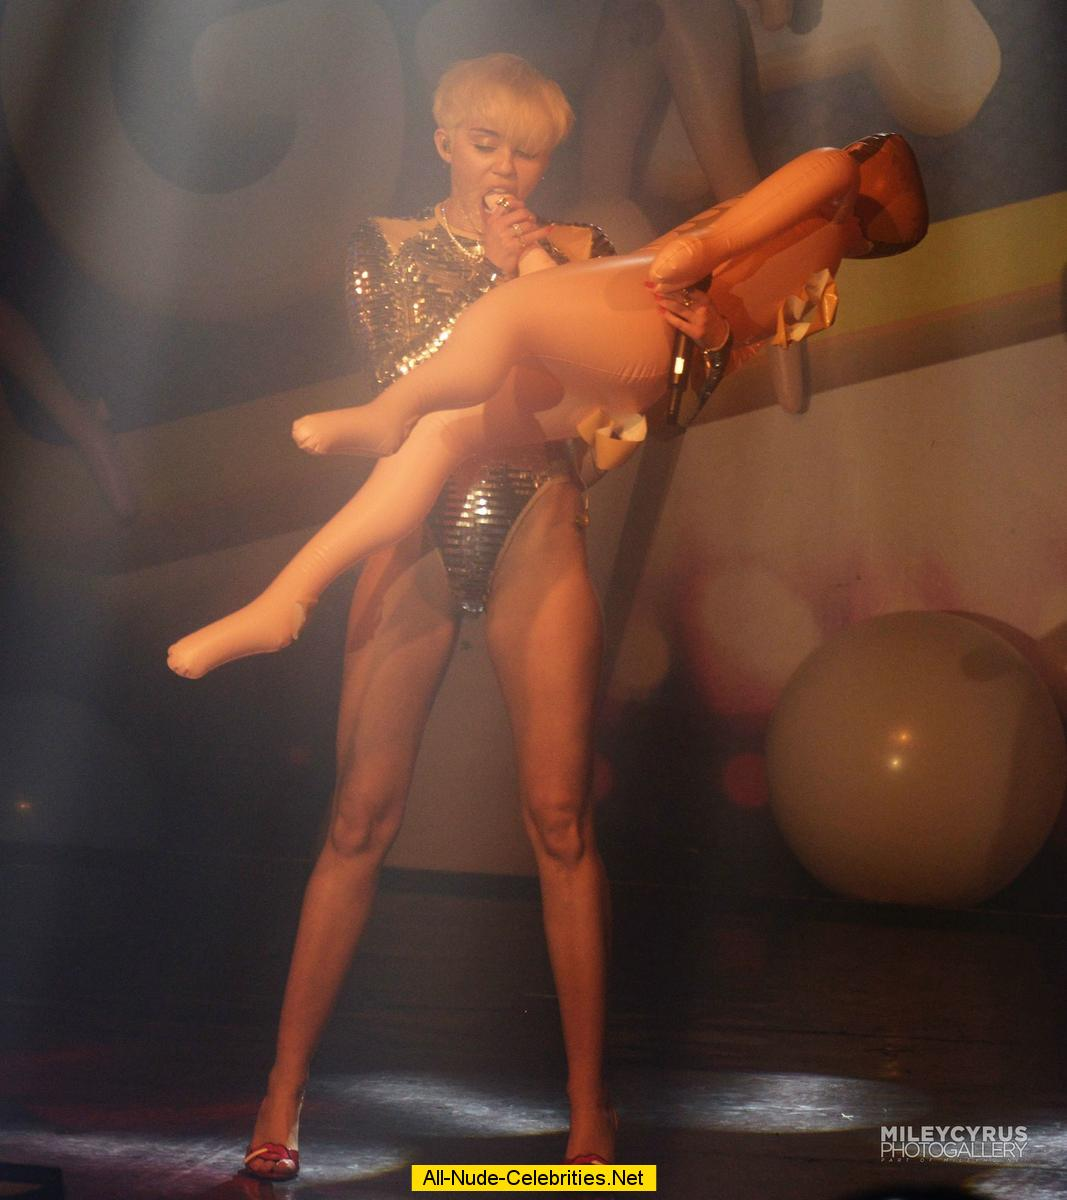 On stage cyrus nude miley